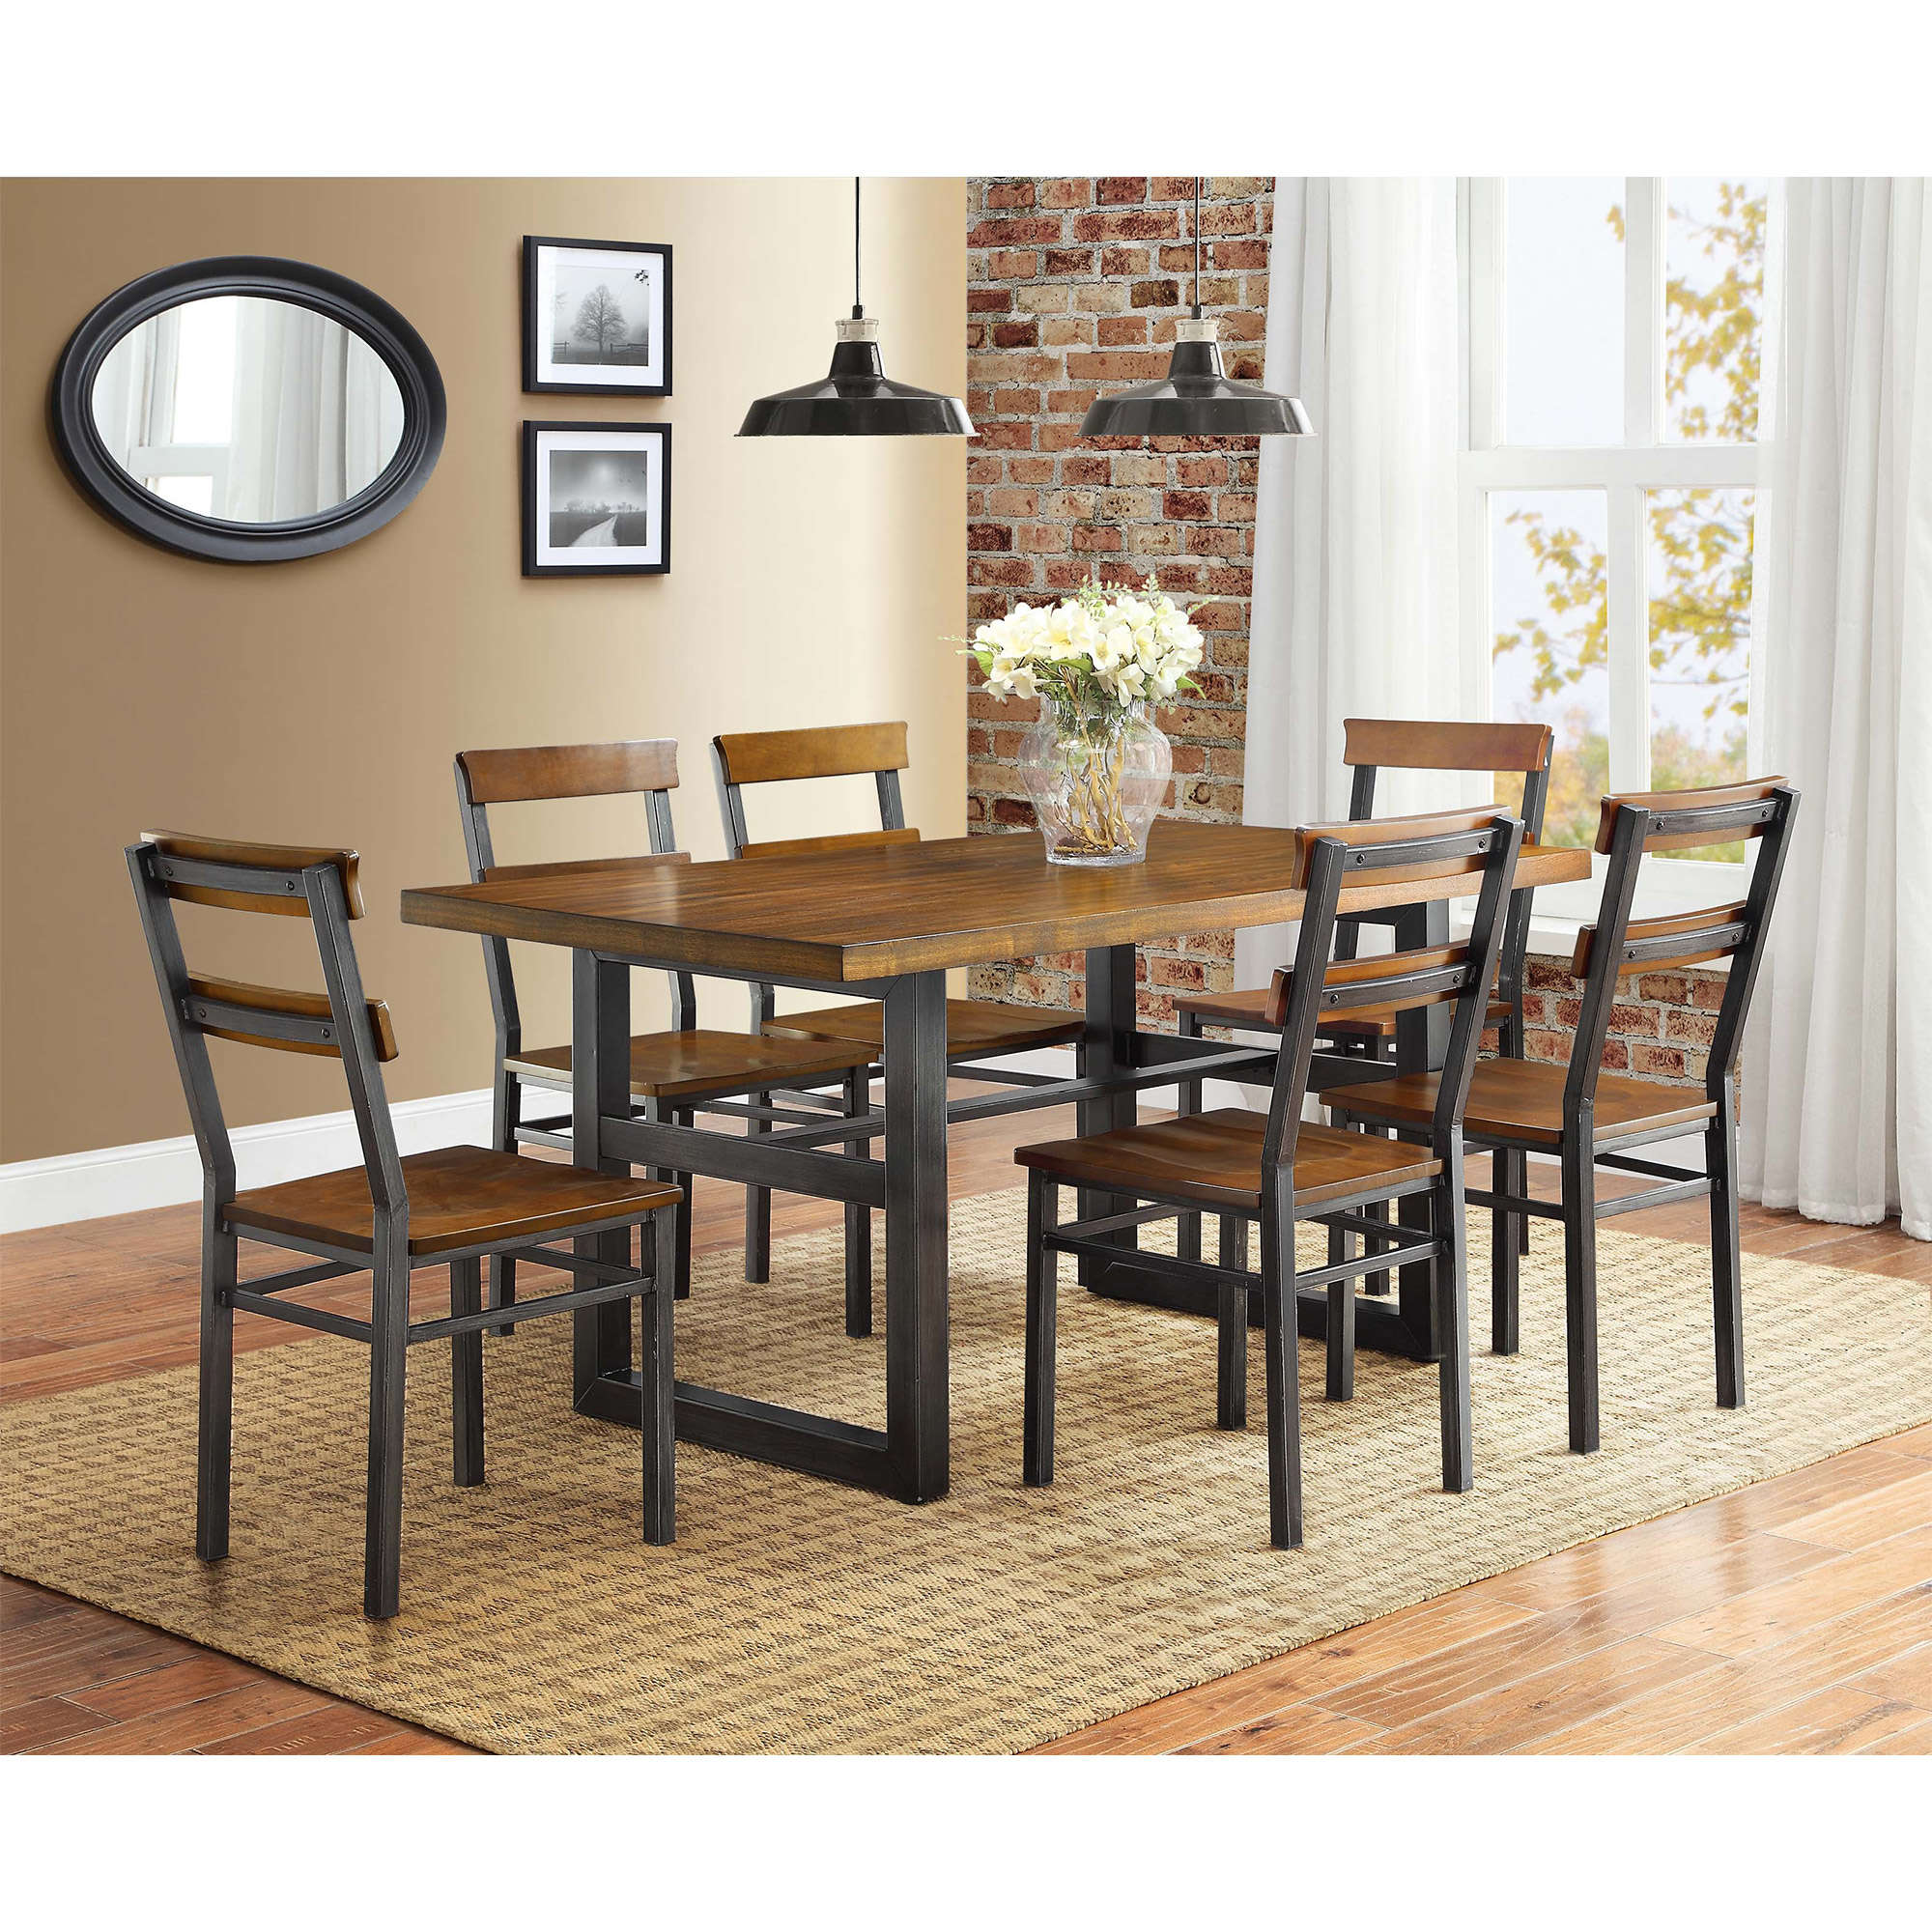 better homes and gardens mercer dining table vintage oak finish accent round patio set solid pine bookcase end stands for living room gold hairpin legs giant umbrella diy small